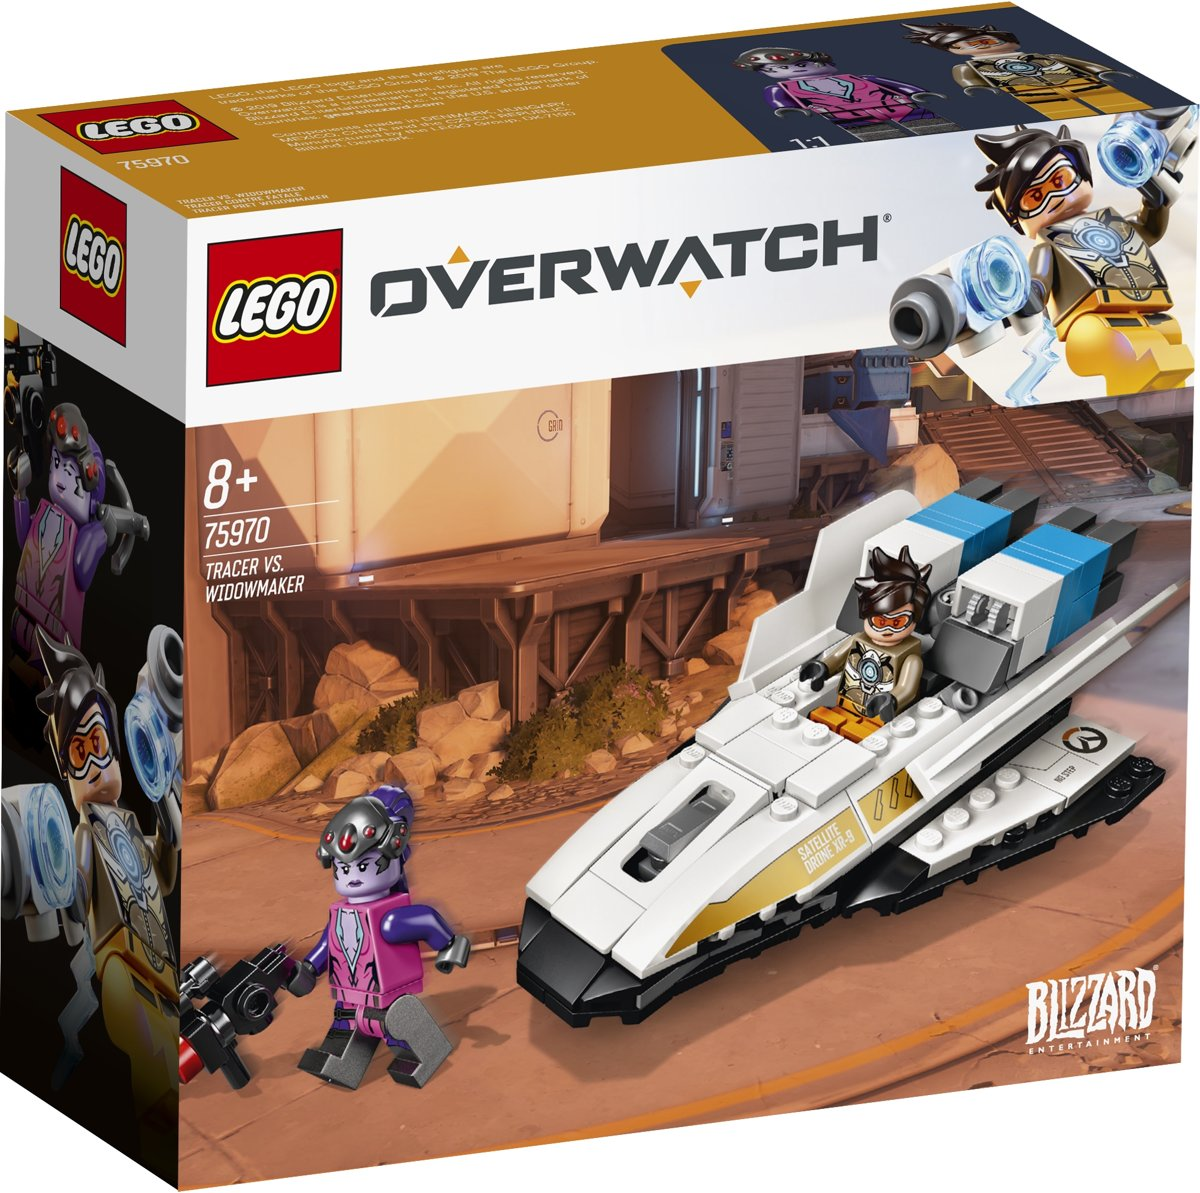 LEGO Overwatch Tracer vs. Widowmaker - 75970